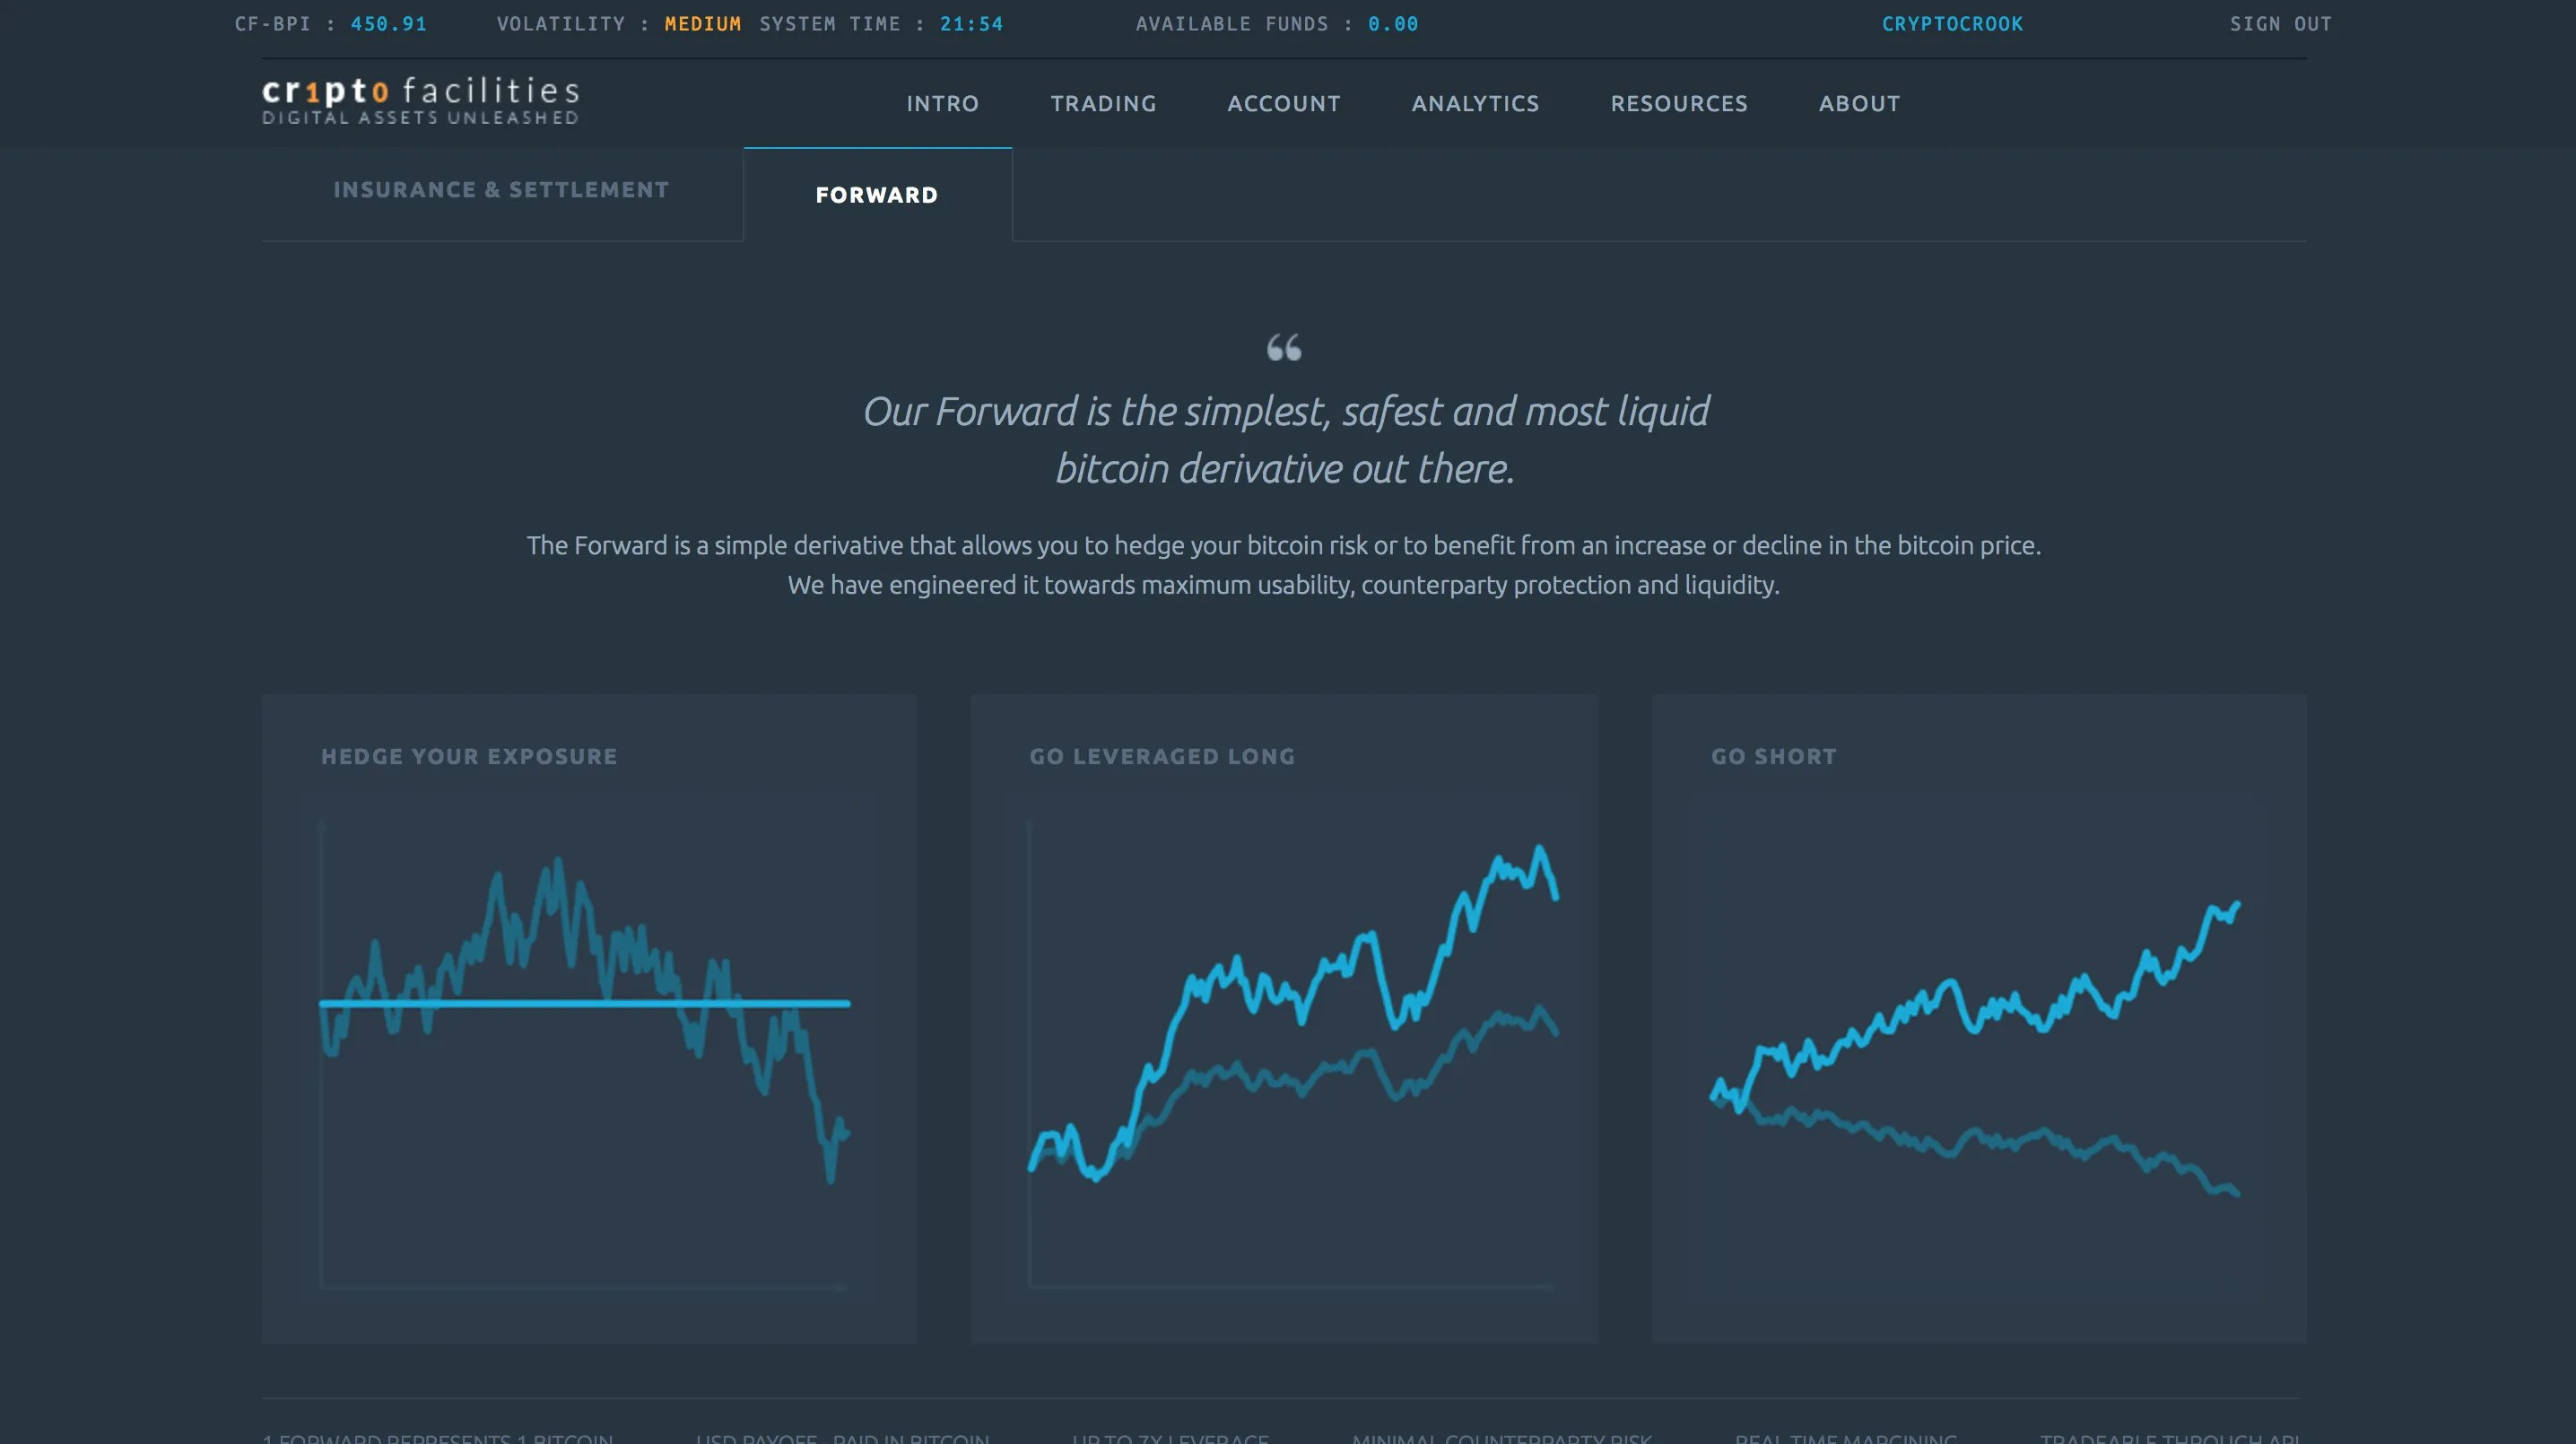 This exchange gives users the ability to short, hedge positions, and margin Bitcoins.